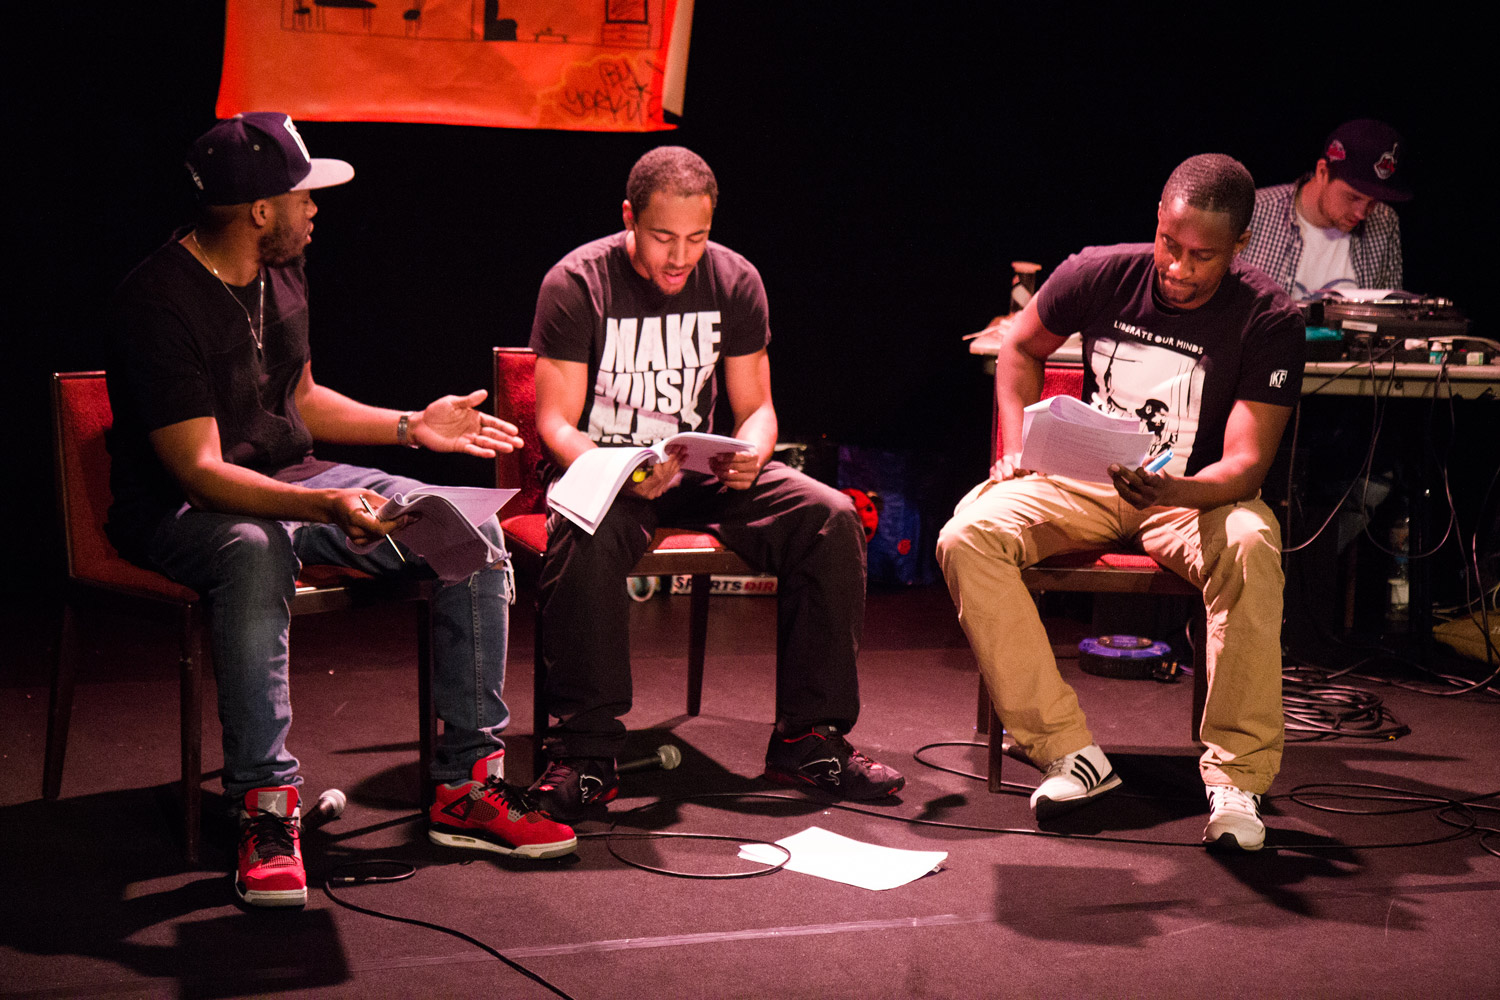 Up North By Jonny Wright A new North/South Hip Hop musical exploring black identity and the music industry.